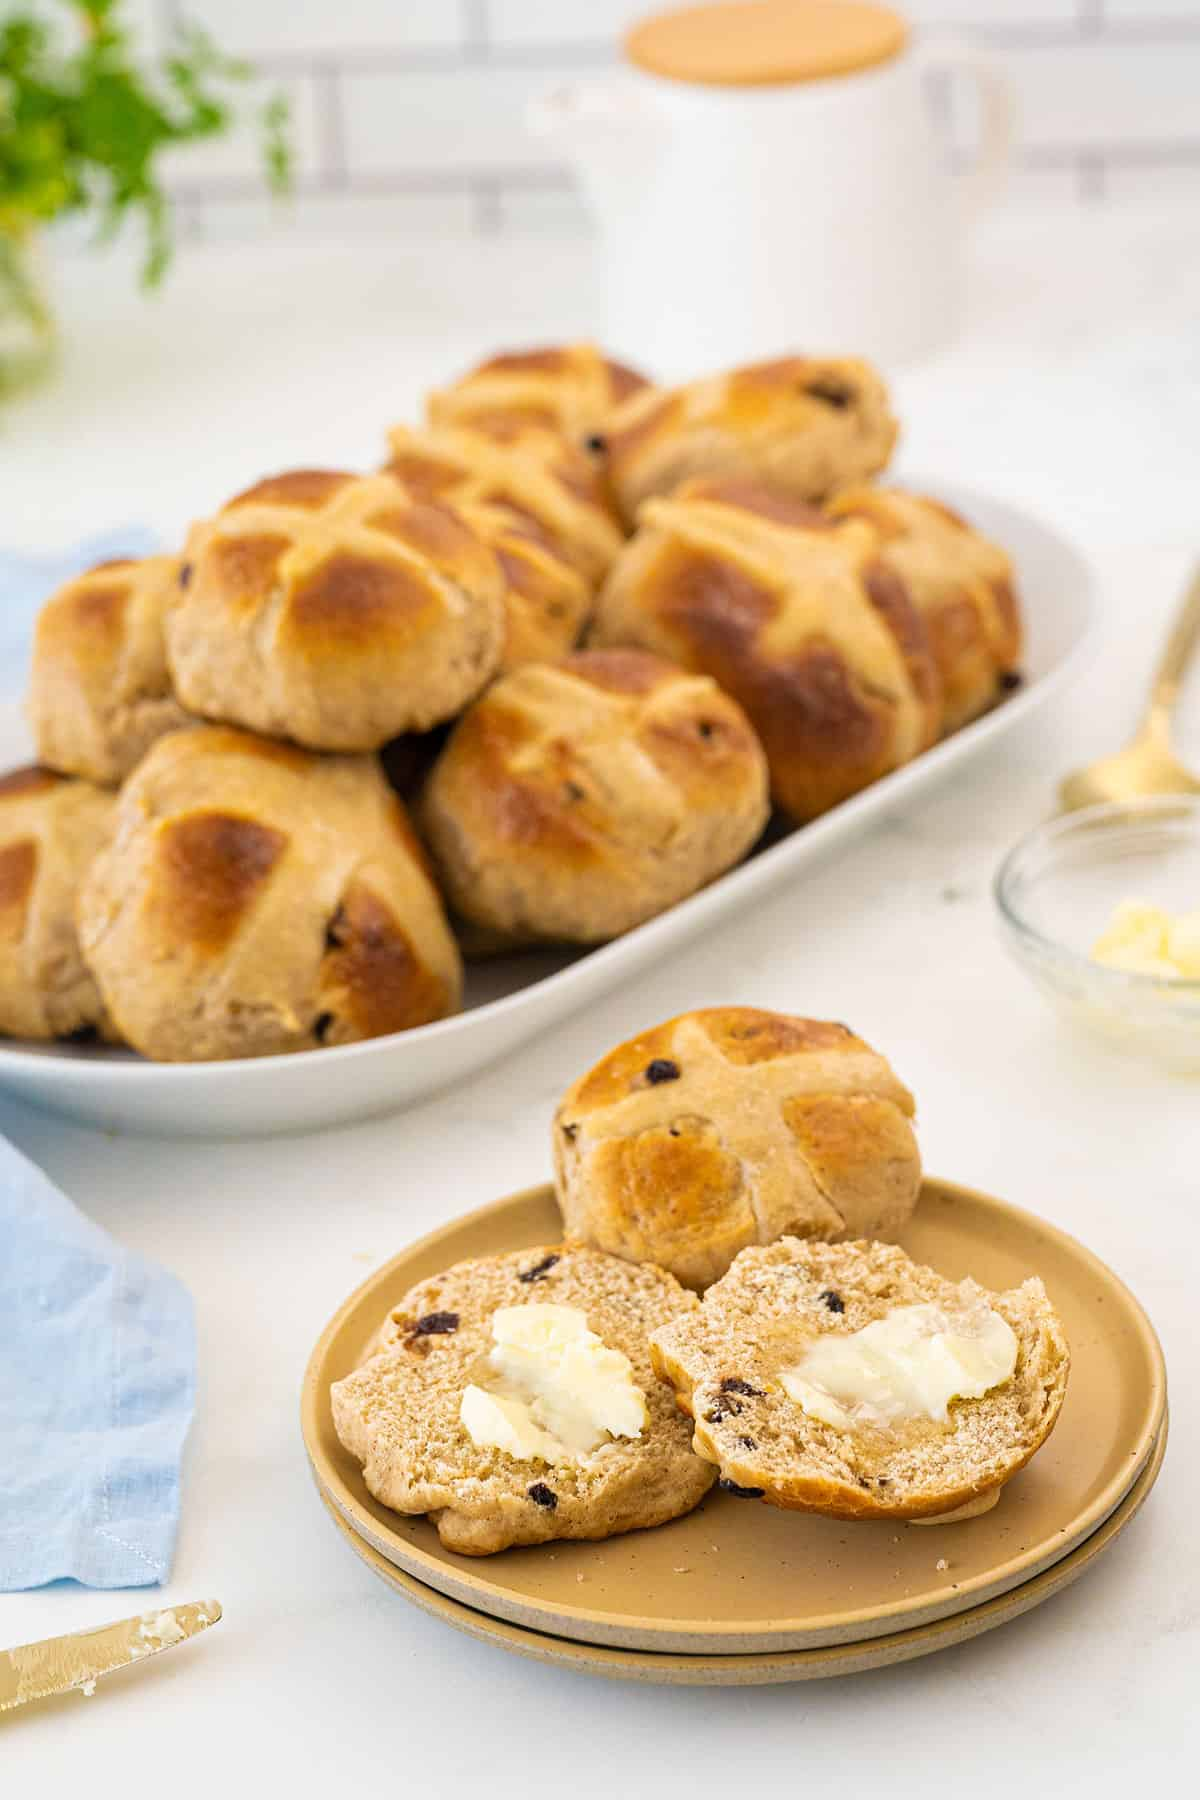 Hot Cross Buns on a plate